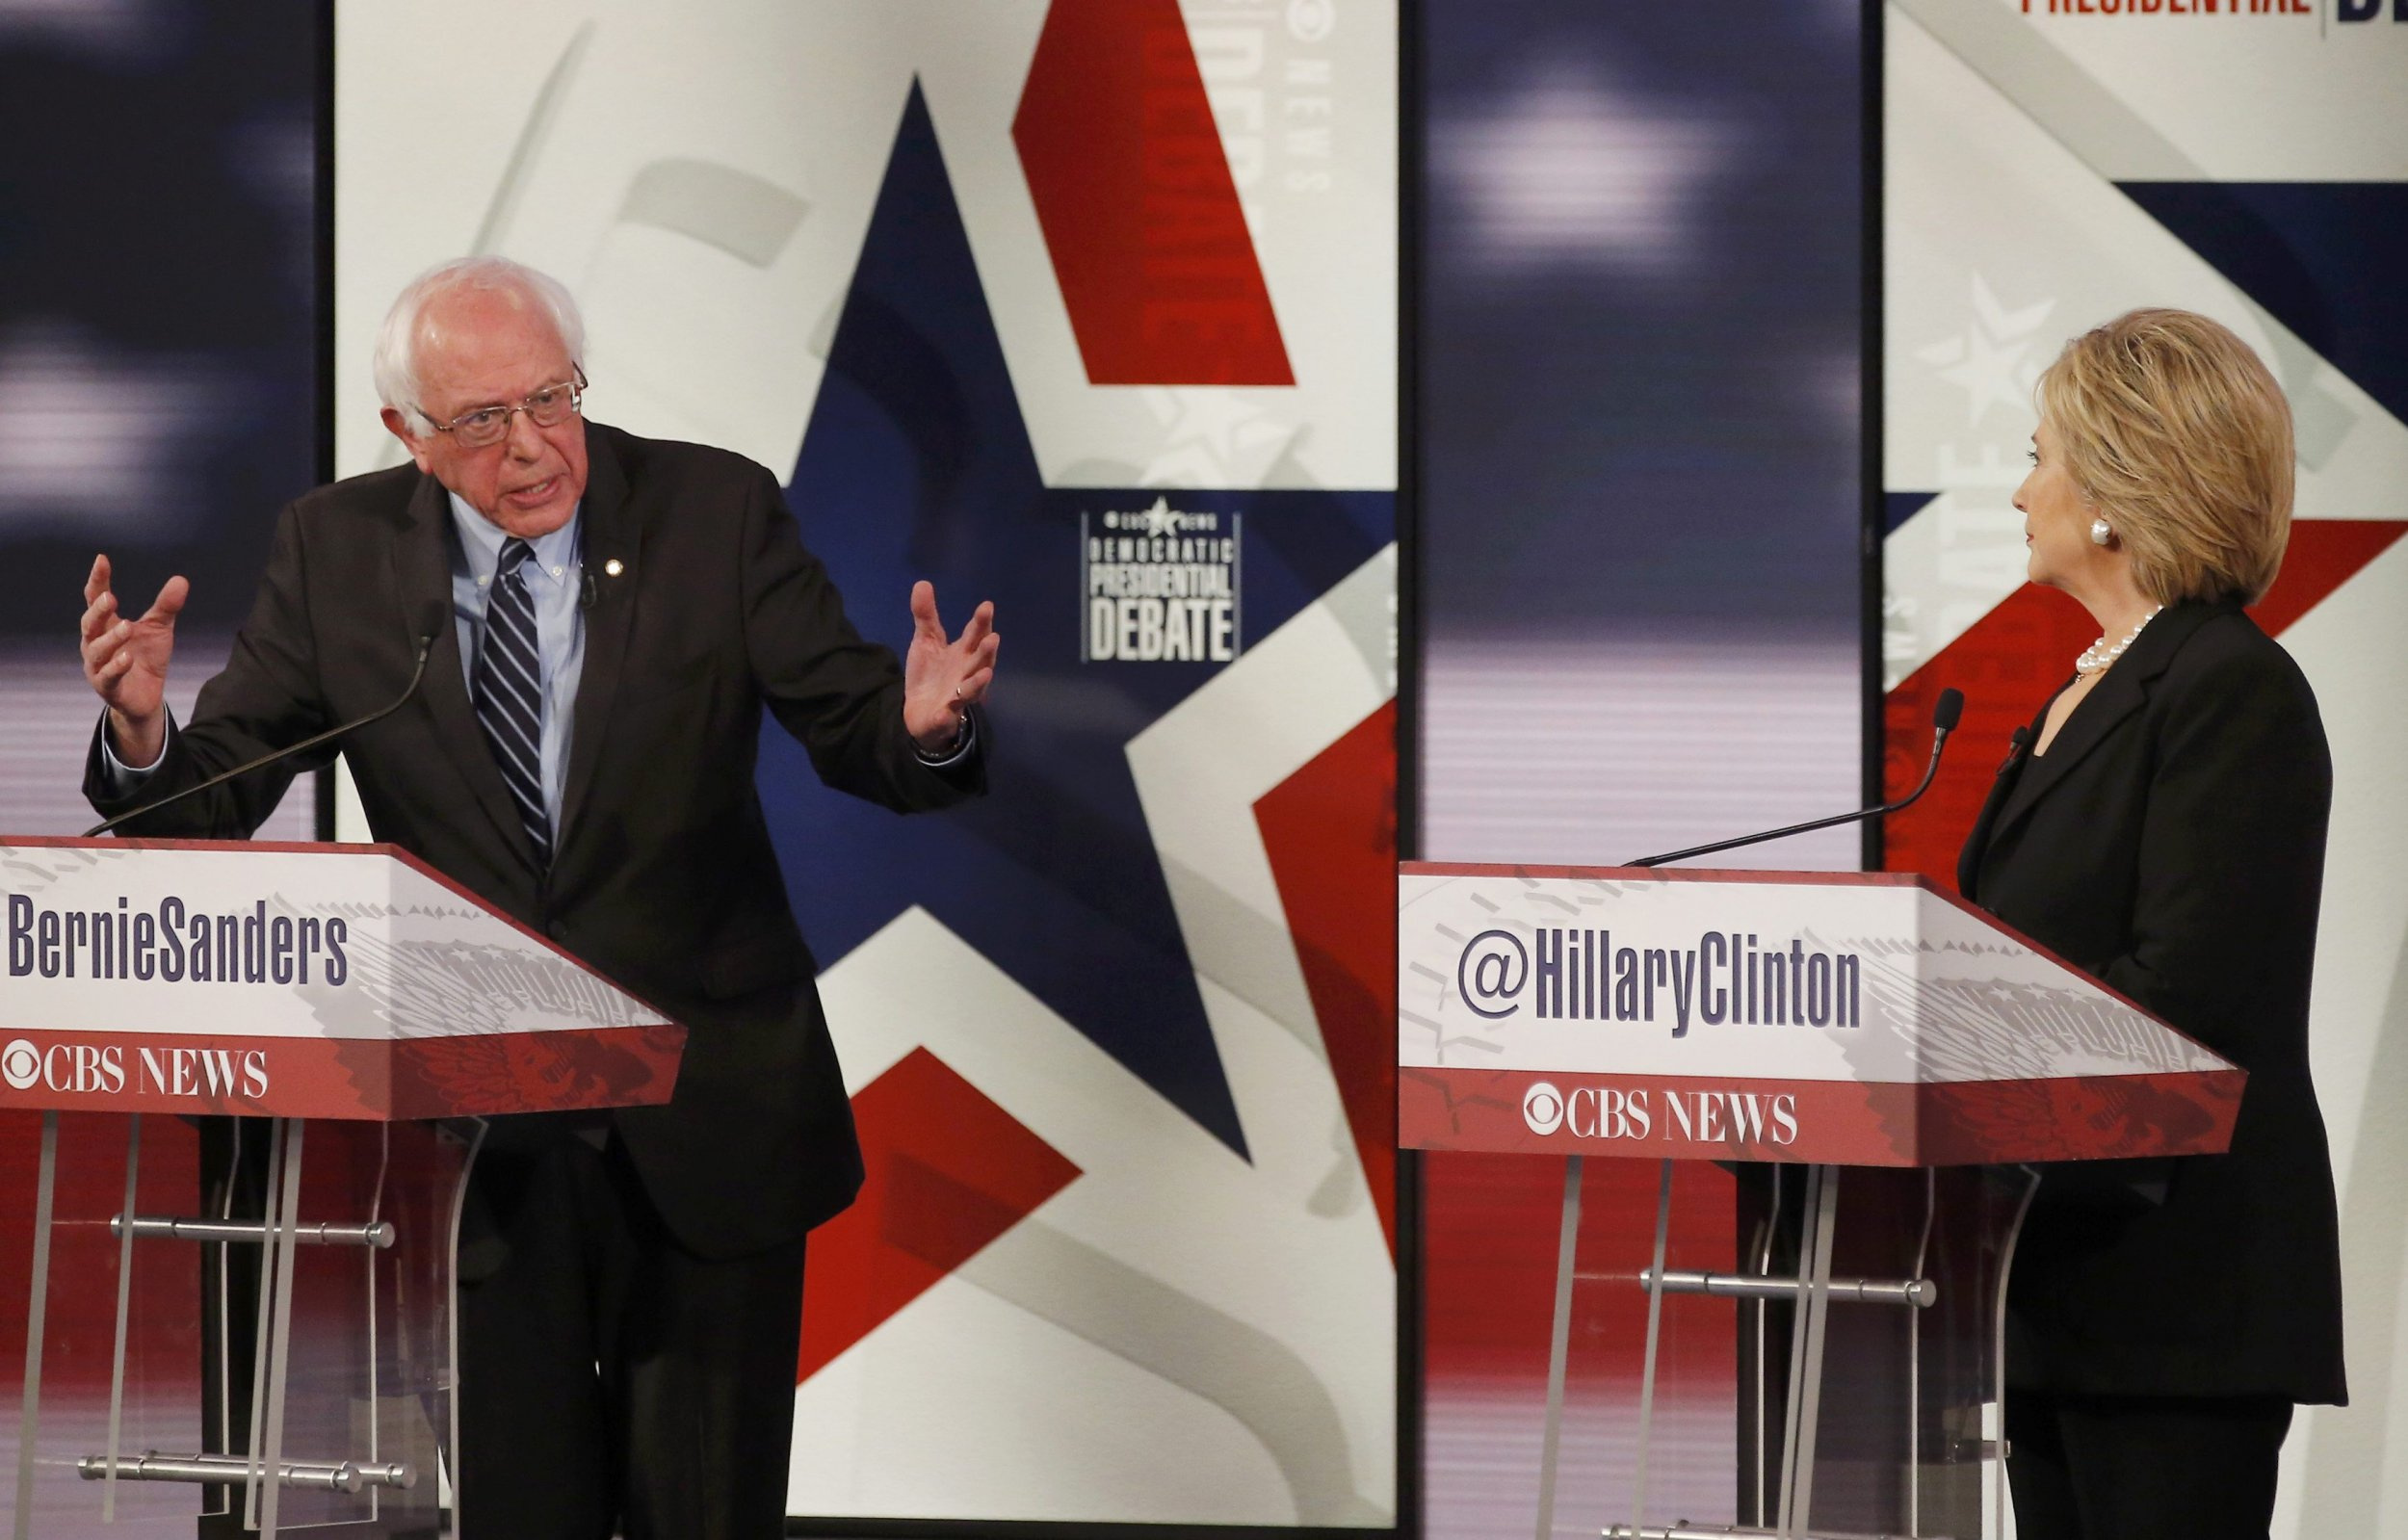 Bernie Sanders hit Hillary Clinton about her Wall Street donations